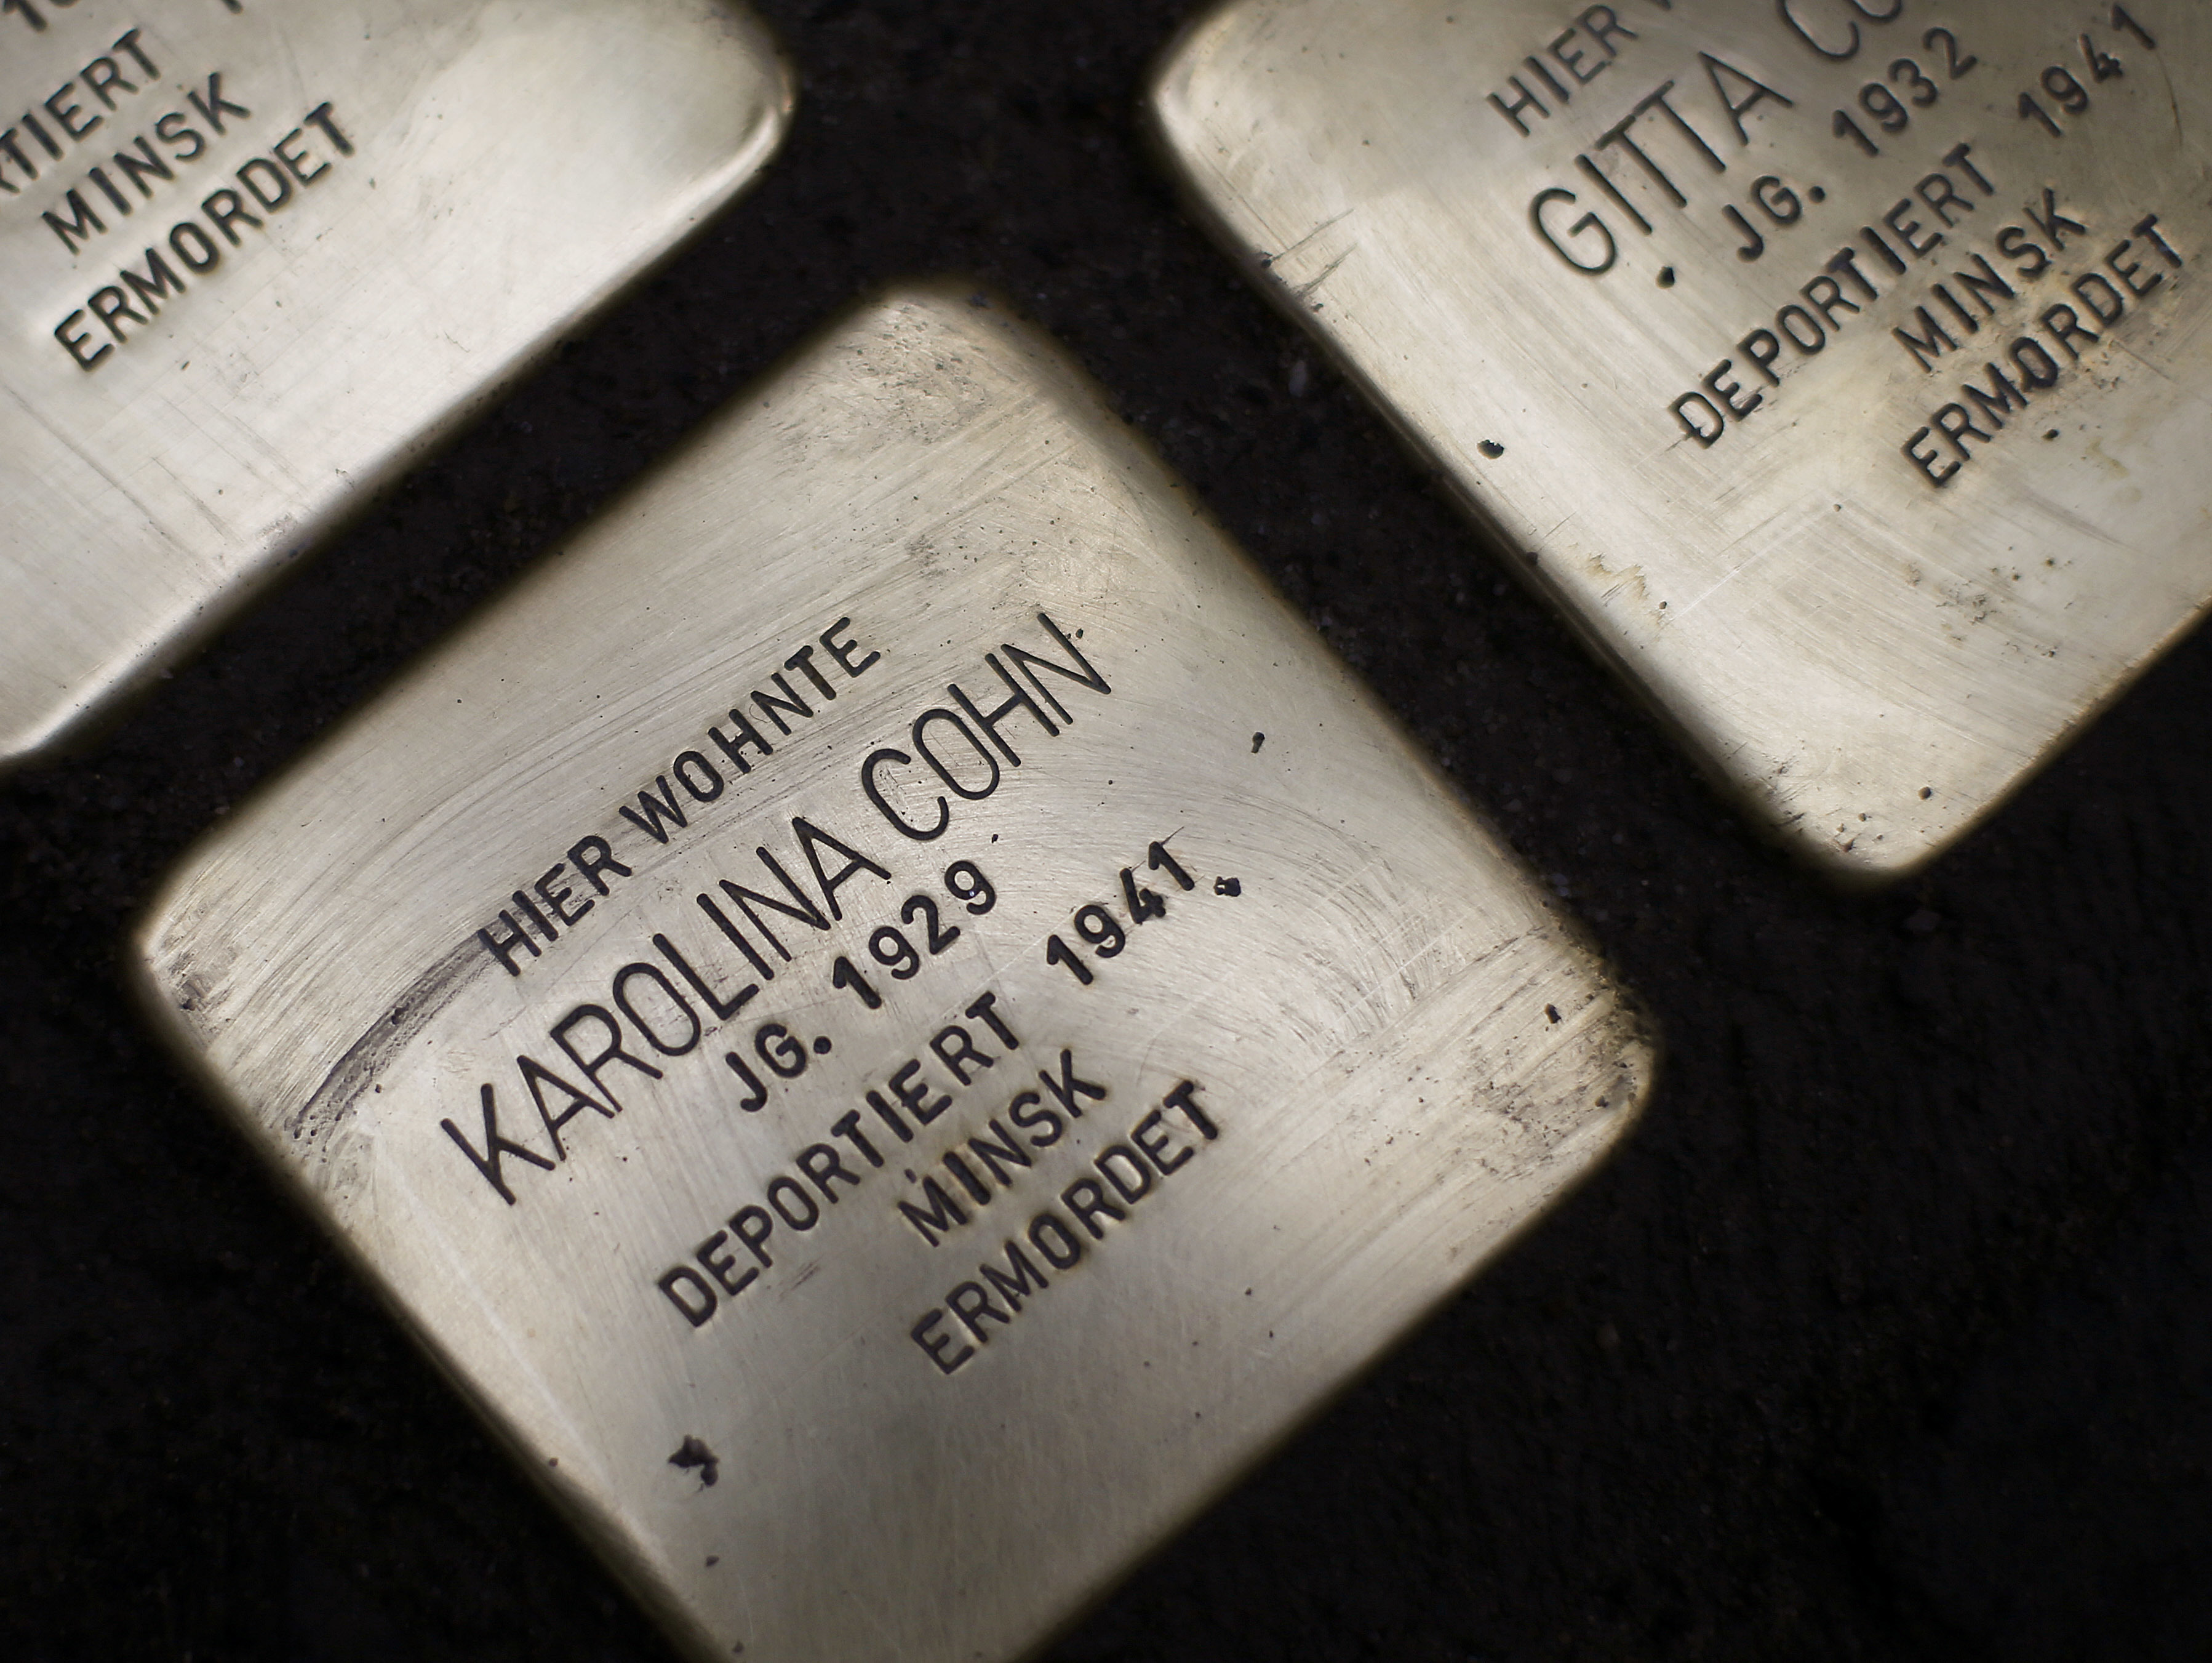 Stolpersteine stones are in at least 1,200 places in Germany and in countries like Austria, Poland and Russia. Cole says they are the inspiration for the public art project he'd like to create for Chicago.